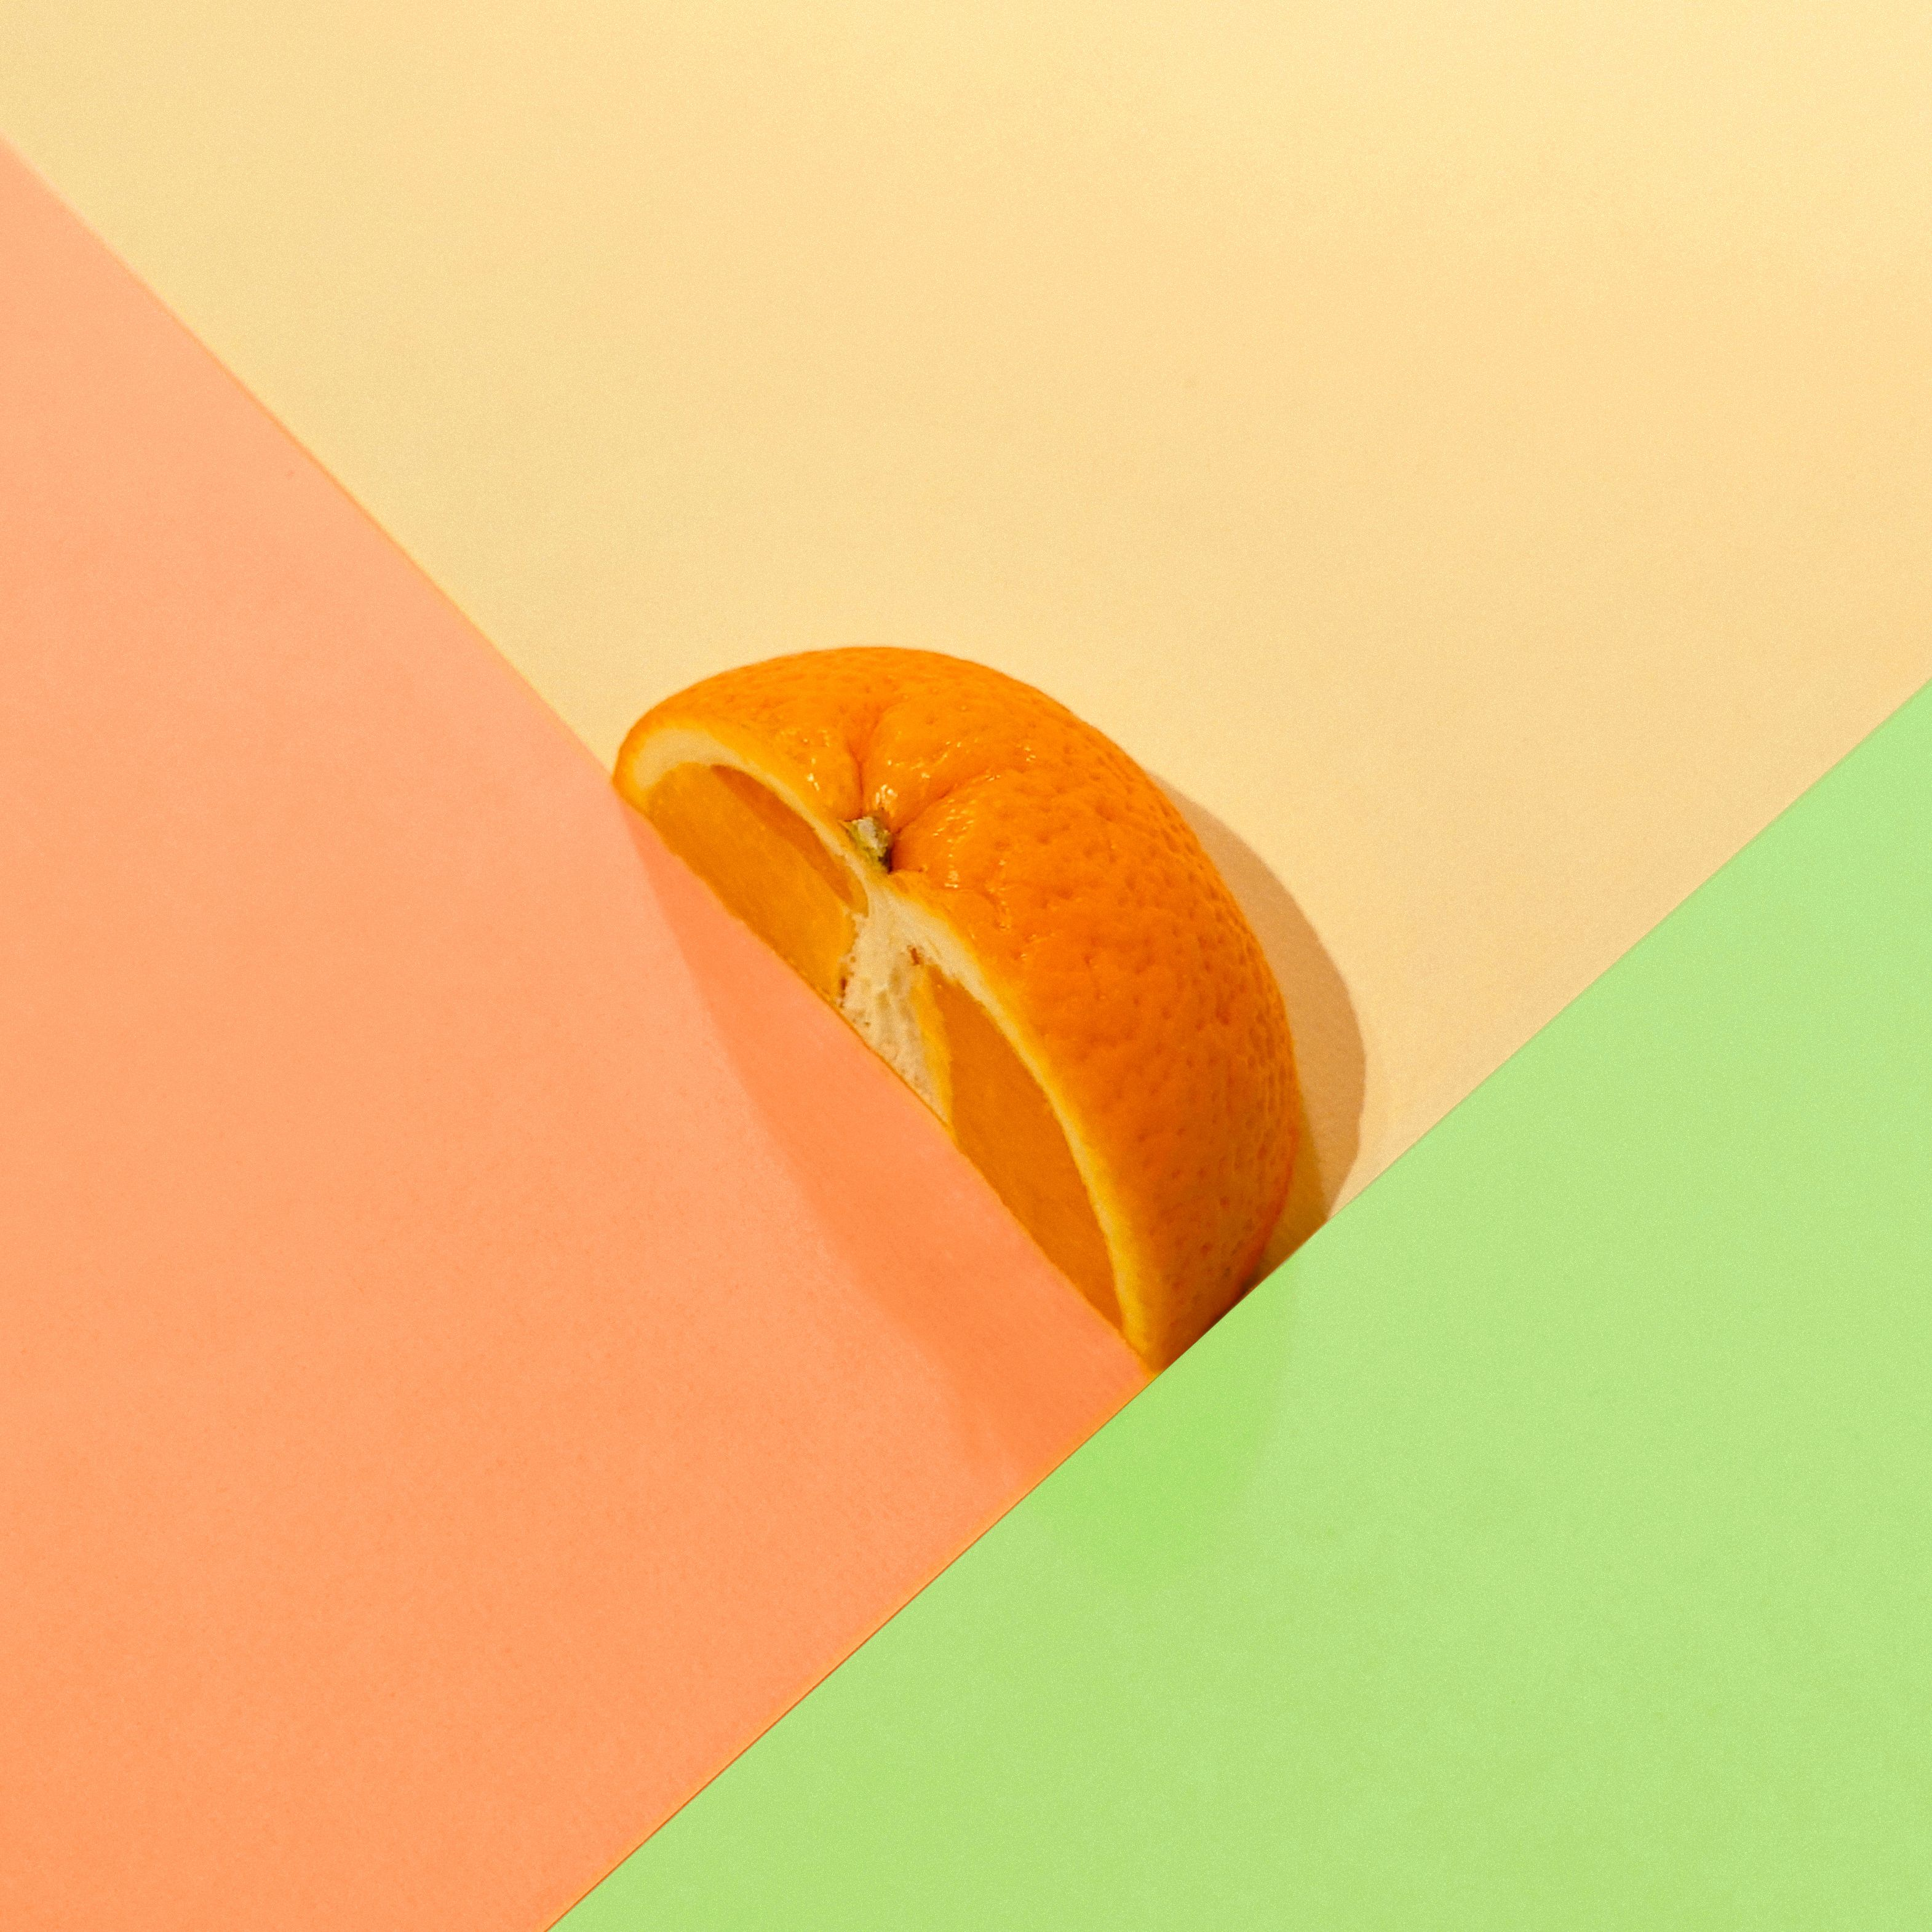 Food Photography Cover Art Coloured Paper Orange Fruit